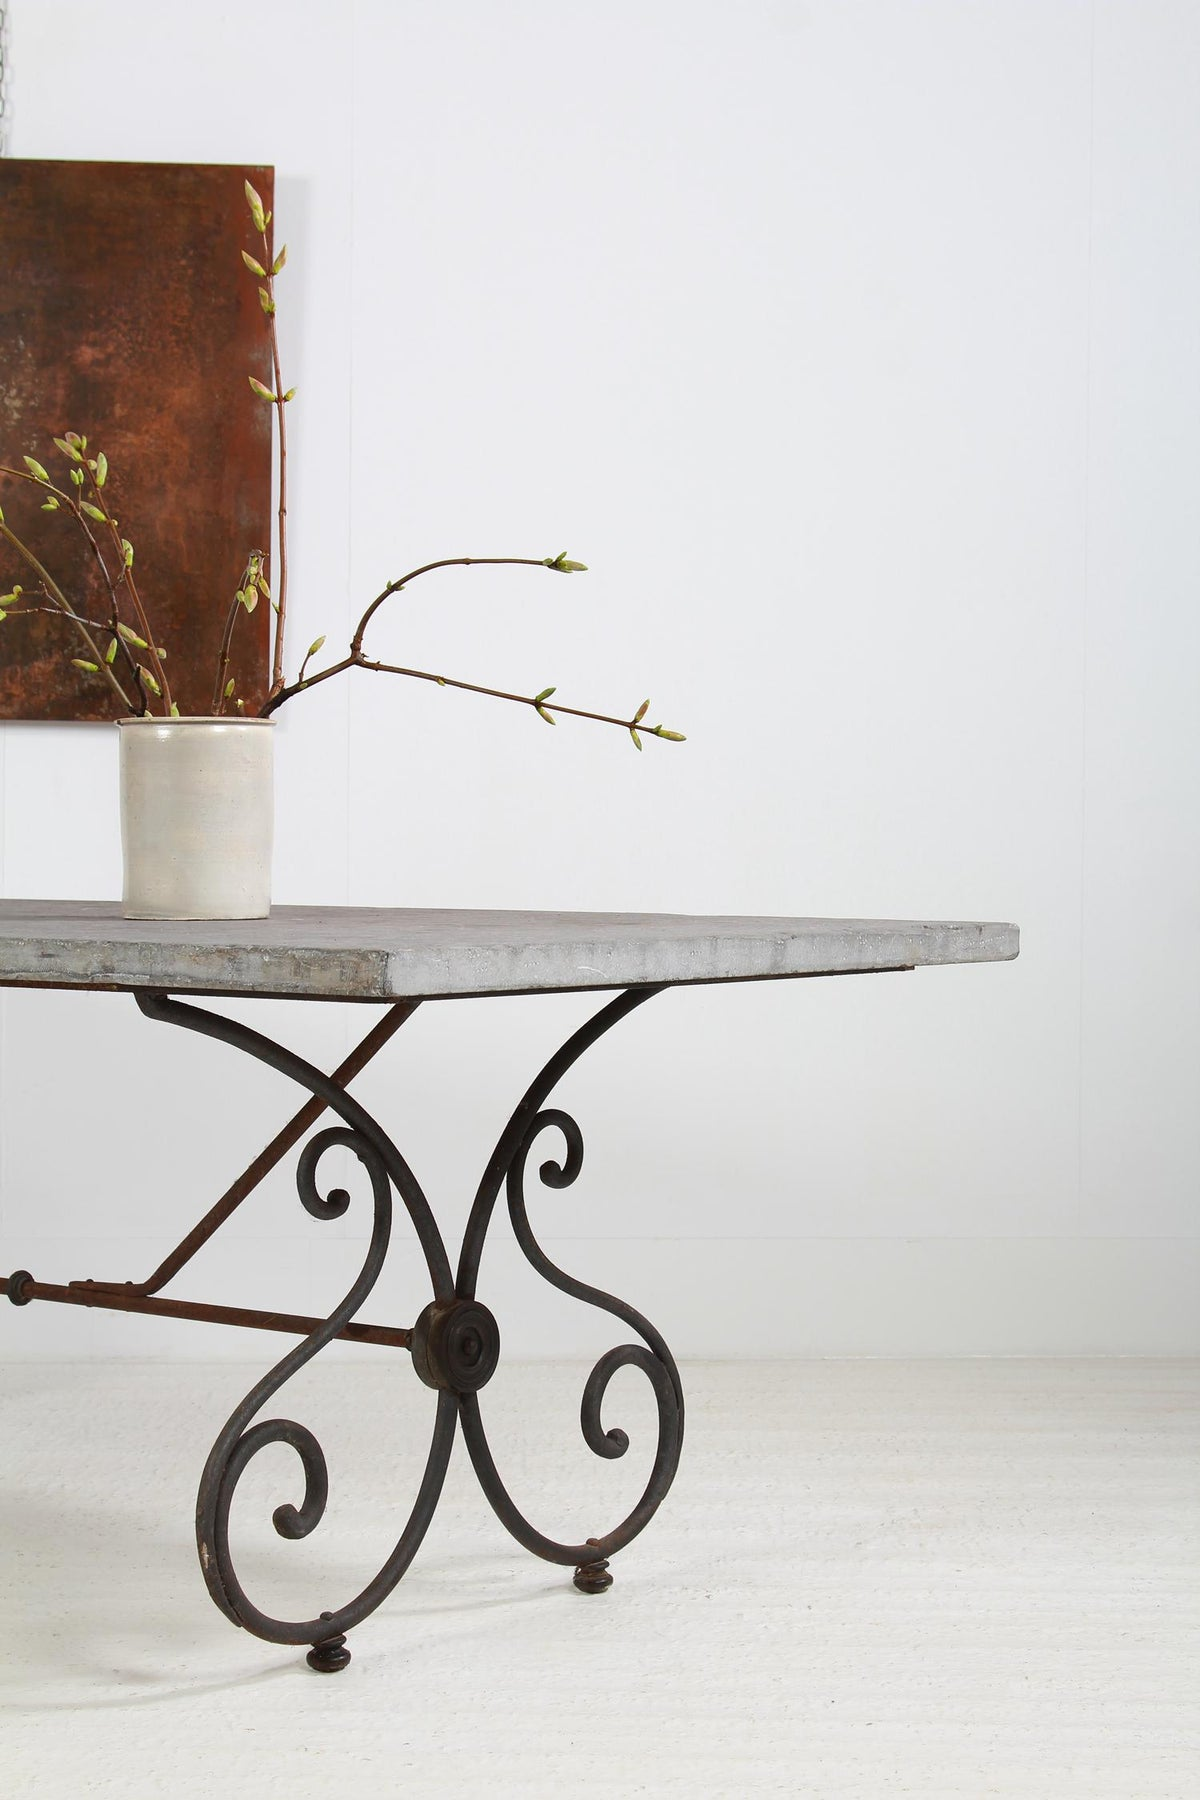 Impressive French 19thC Iron & Belgian Bluestone Garden Table